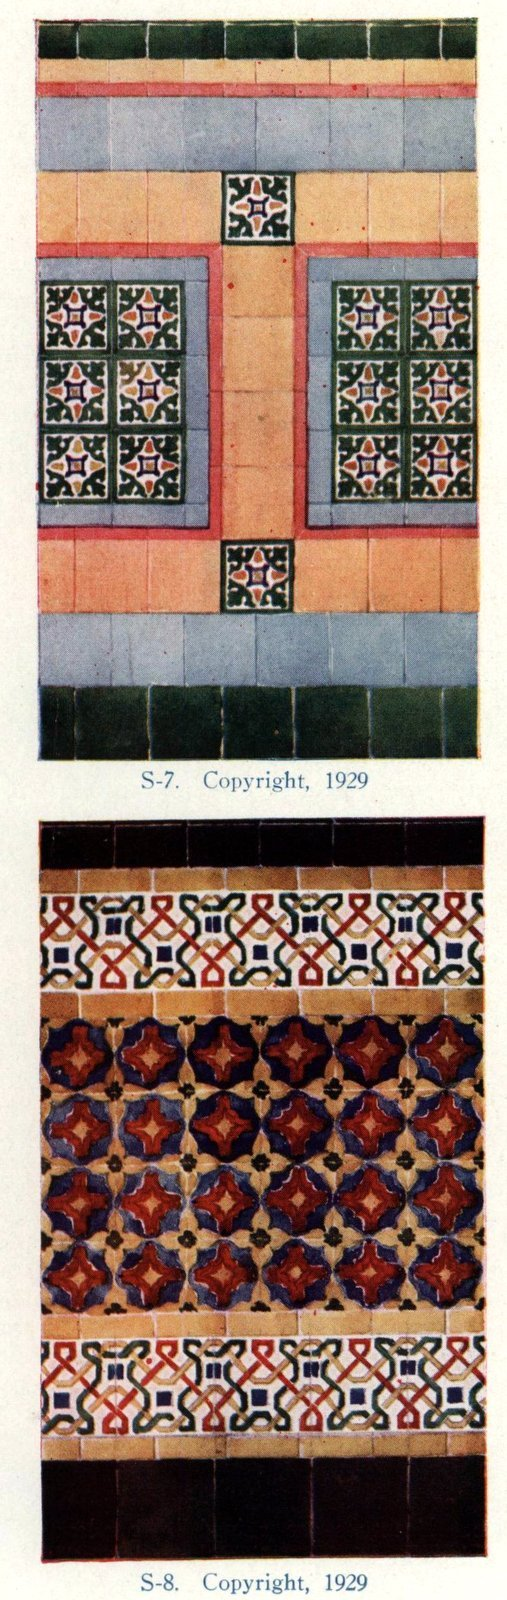 Authentic 20s tile designs and patterns from the home from 1929 at Click Americana (9)